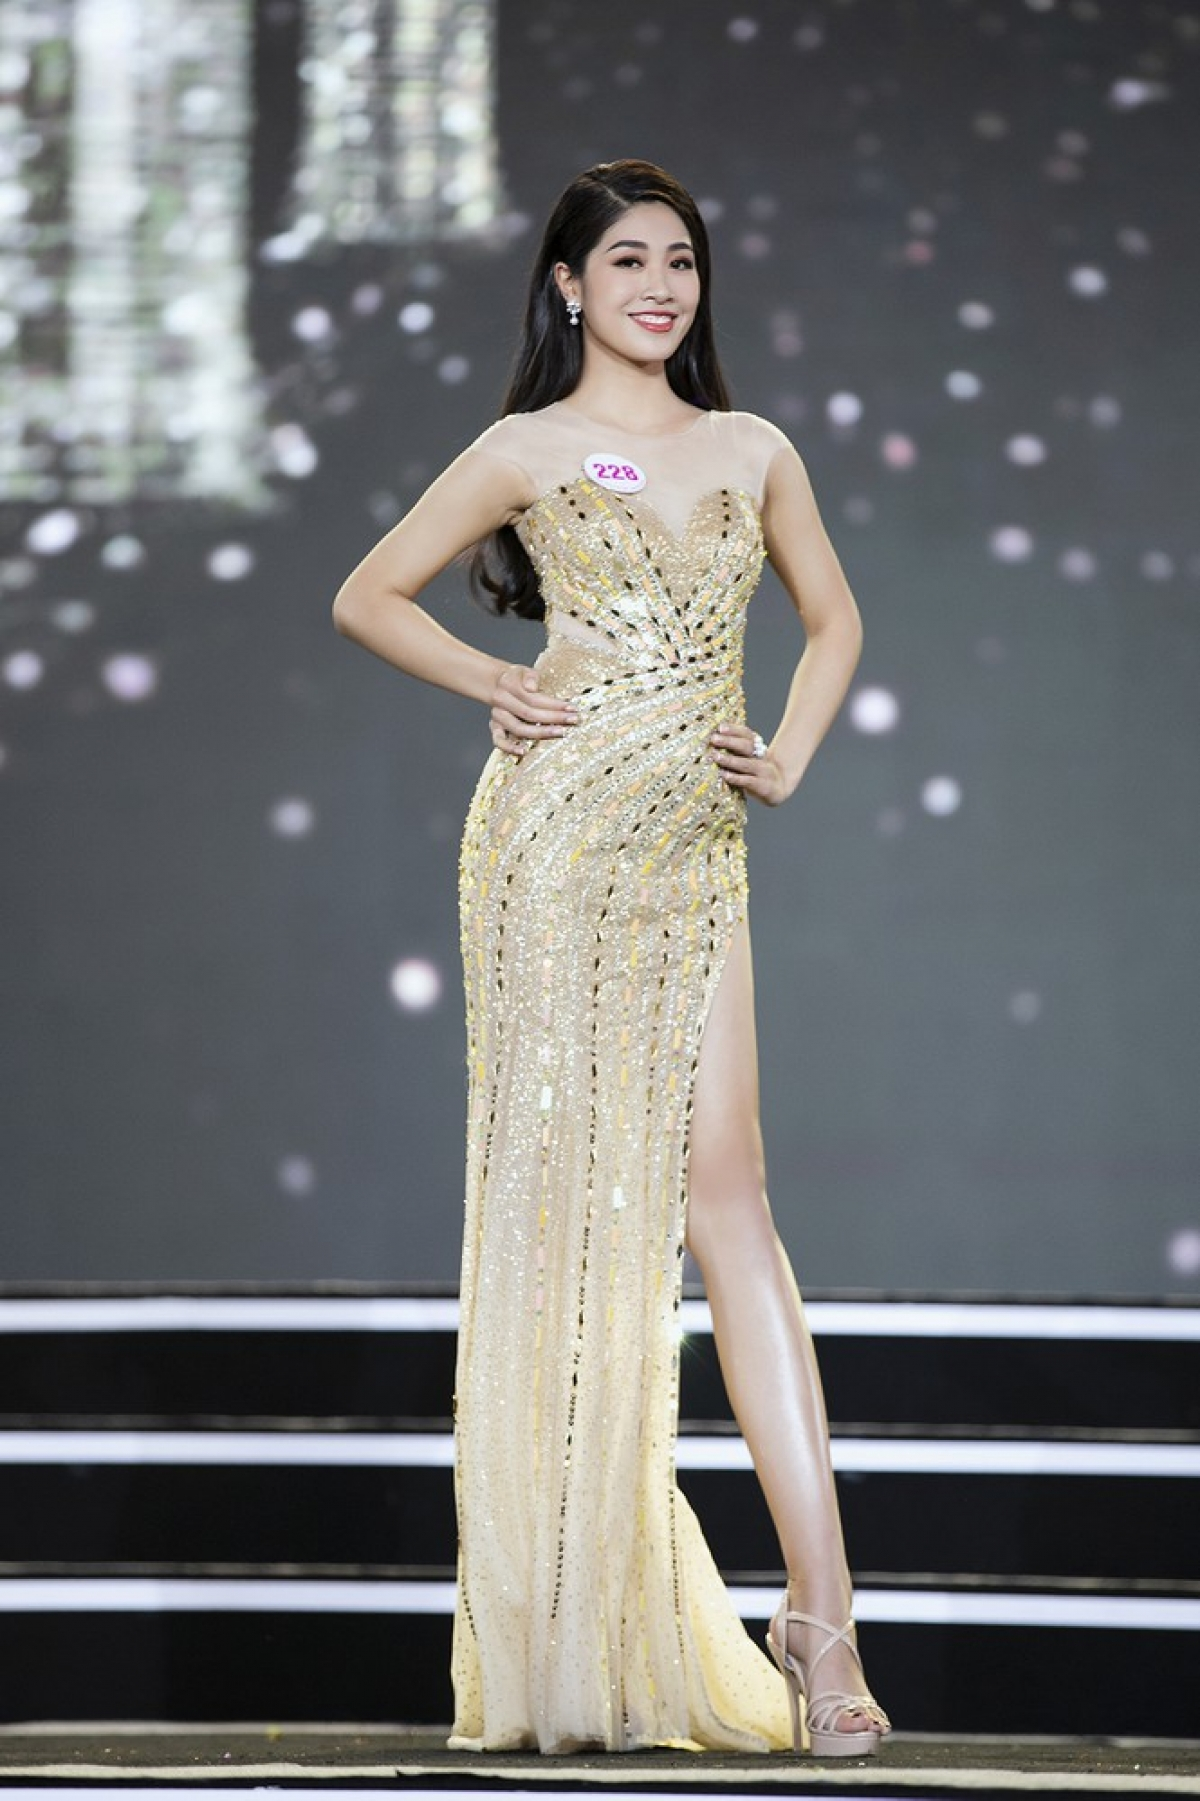 Dang Van Ly from Hai Duong province stands at 1.76 metres tall and measures 85-65–95.